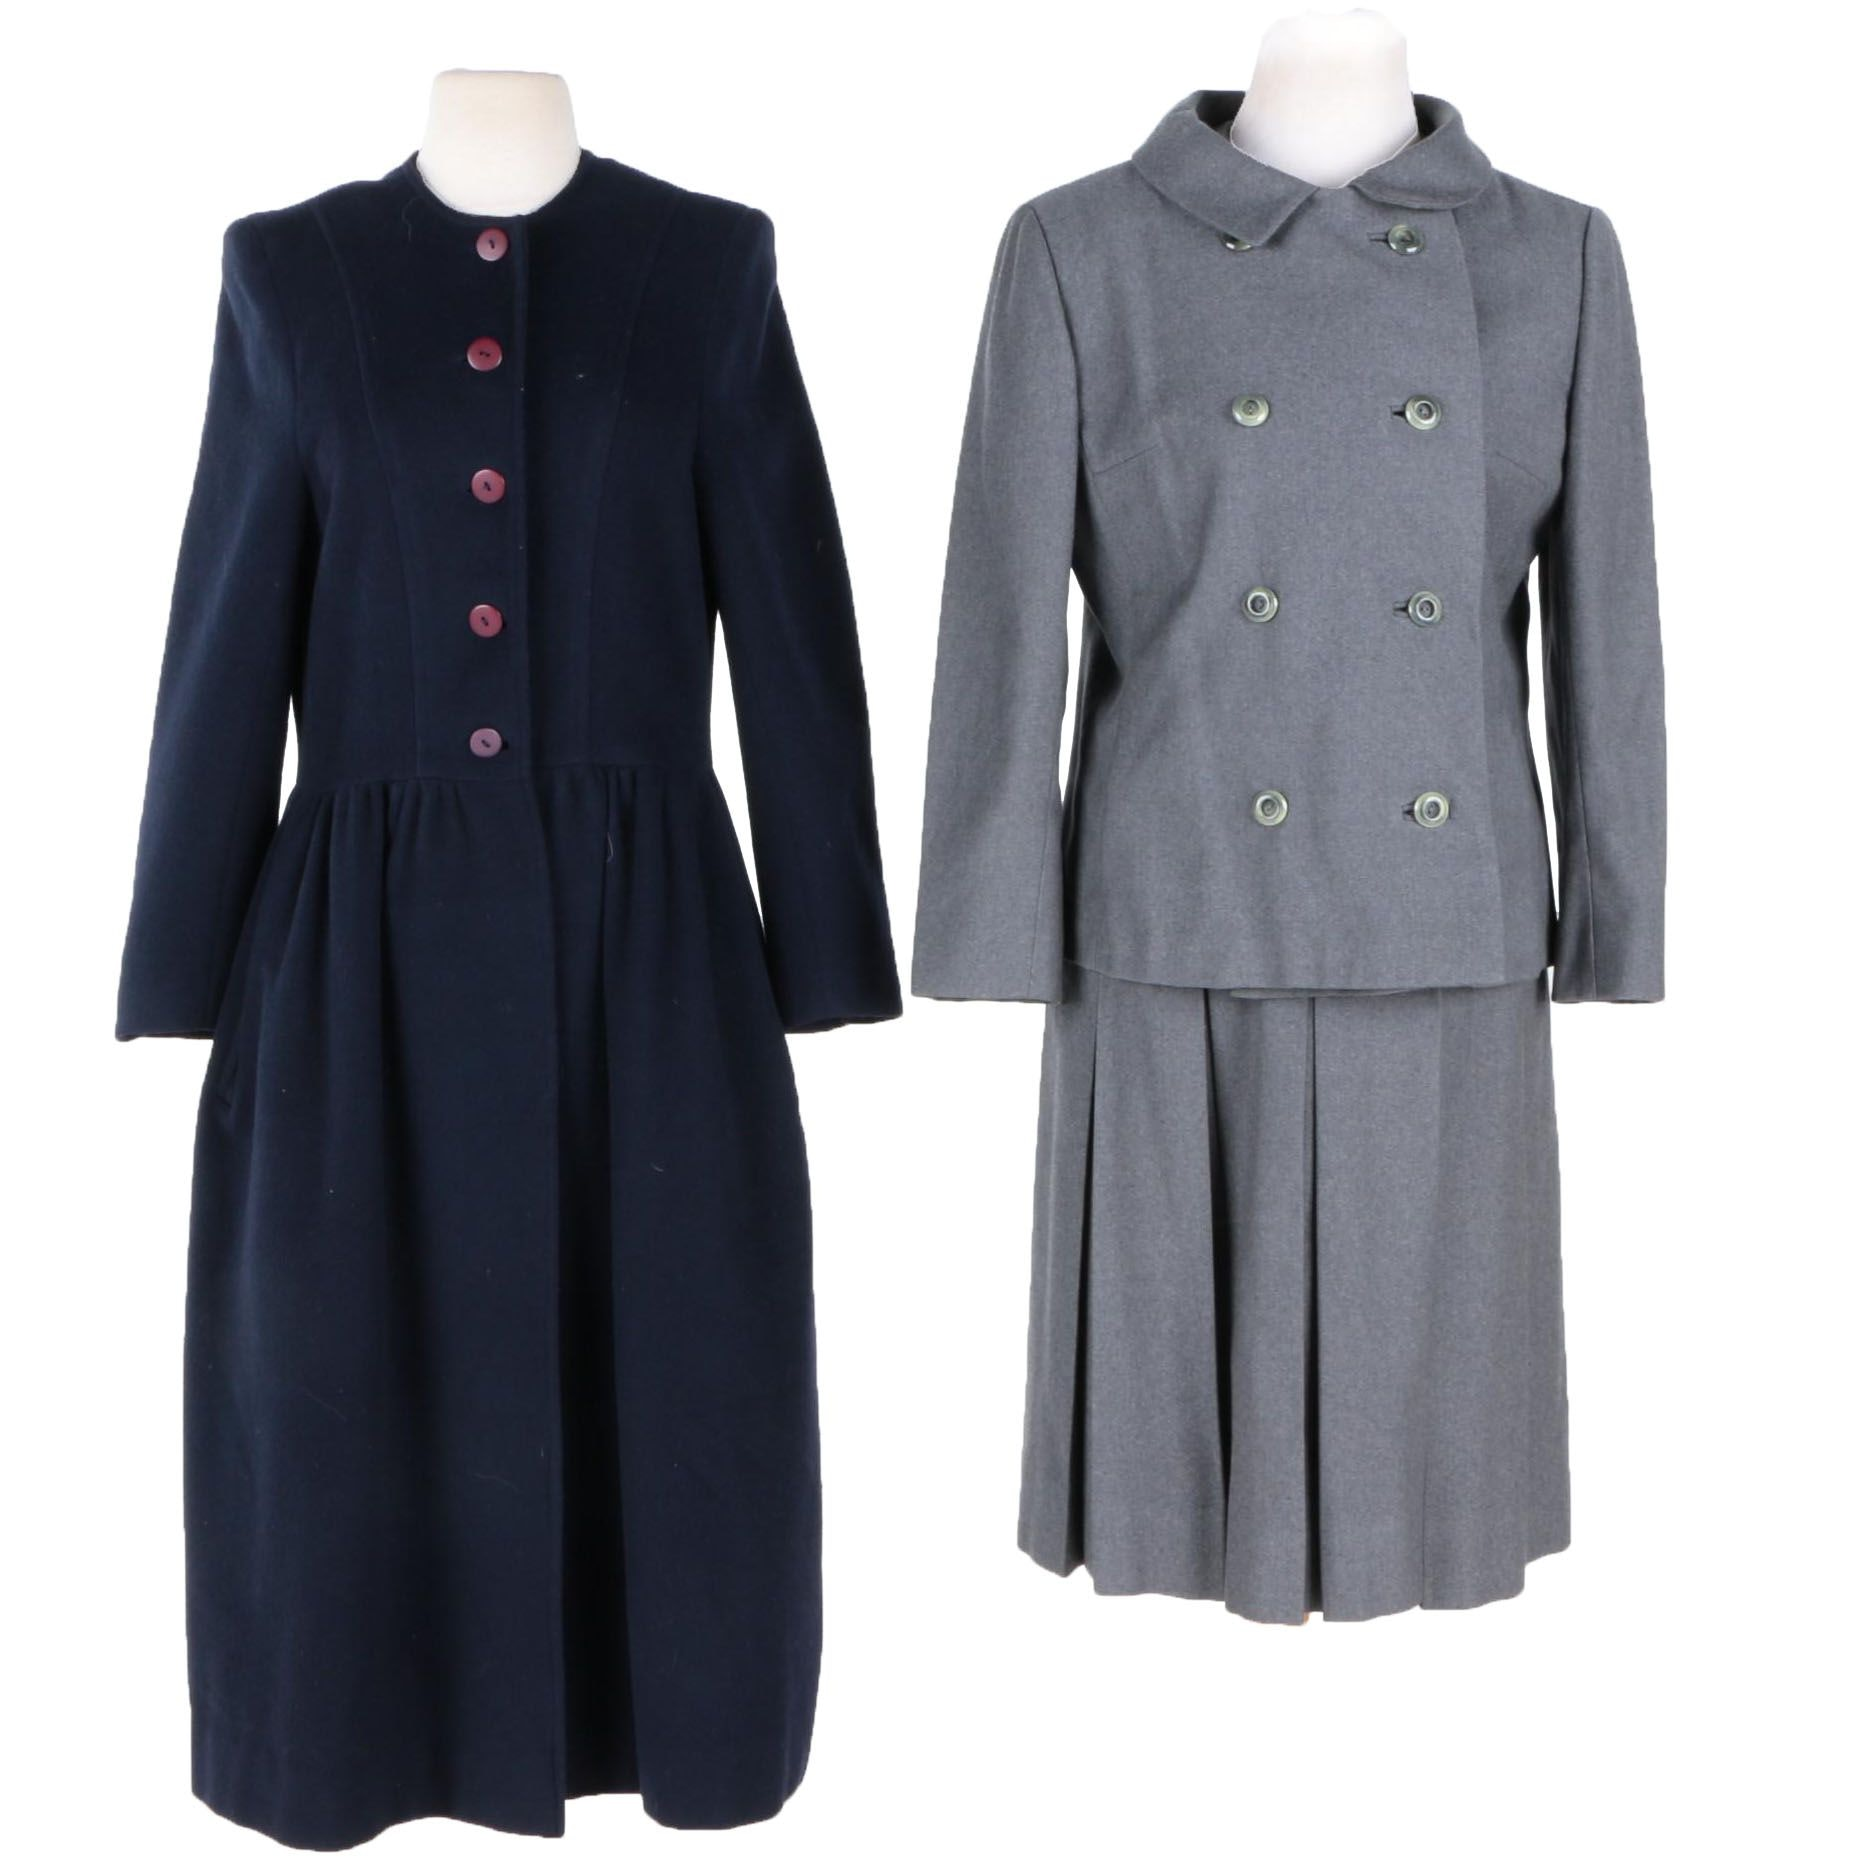 Vintage Overcoat and Dress Suit With Jacket